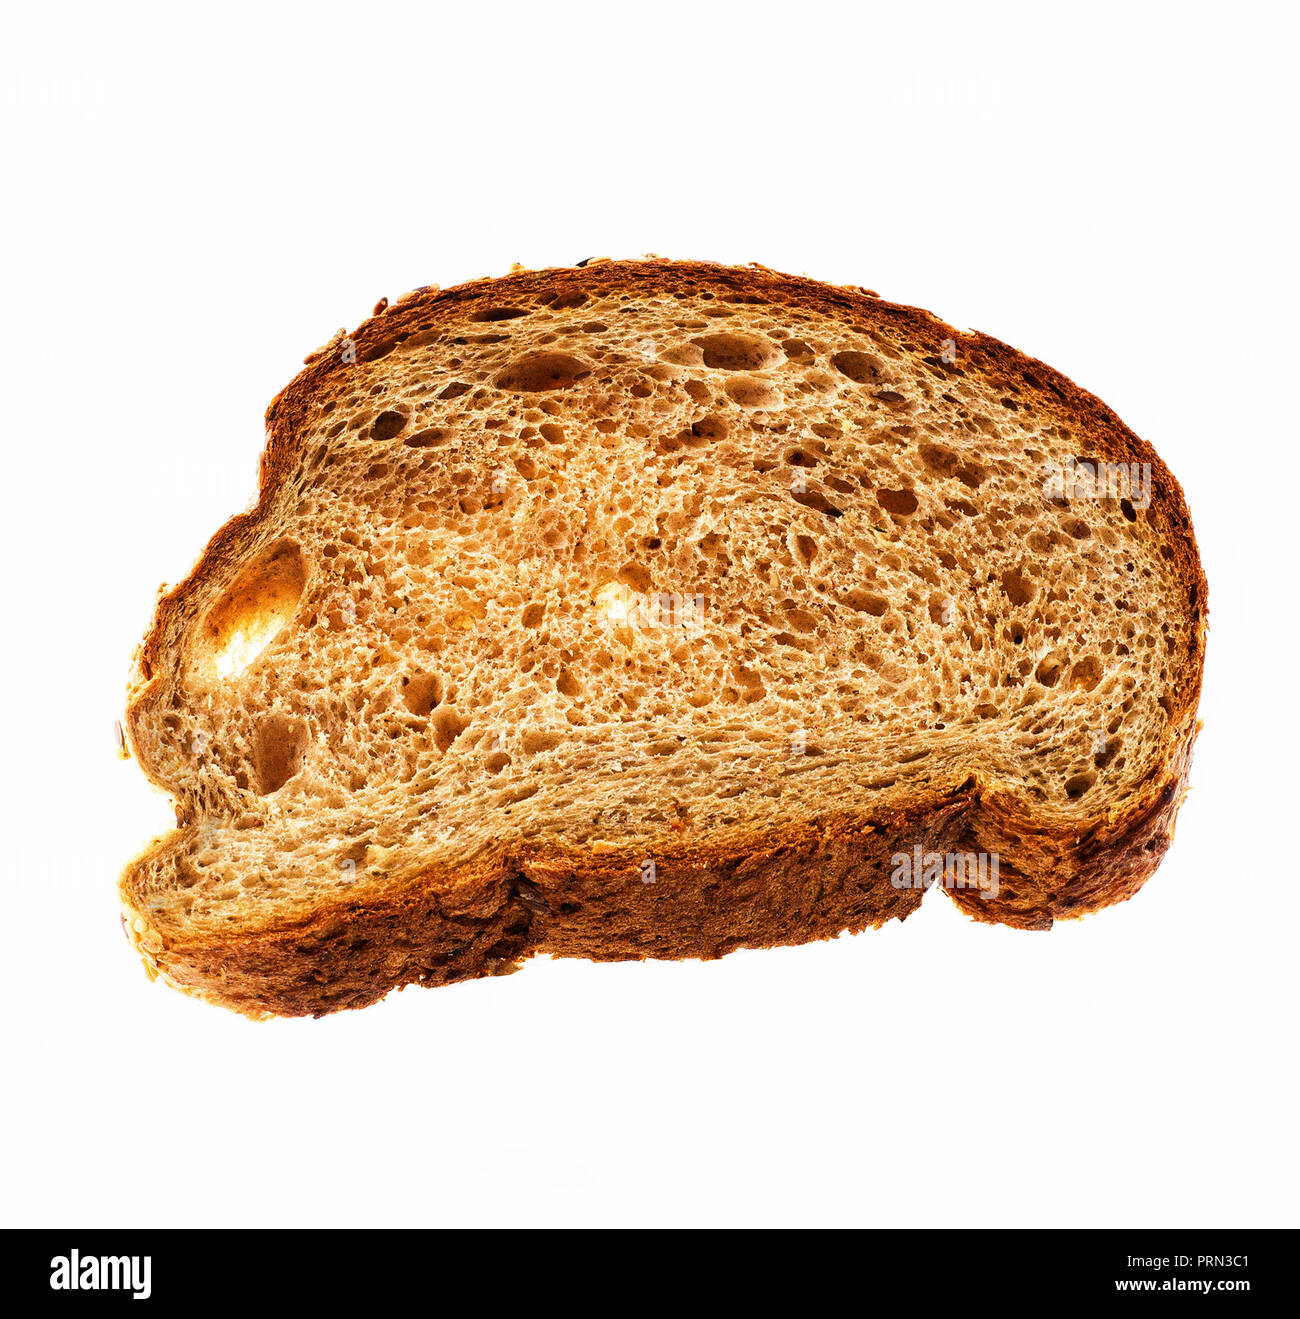 Top view of slice rye wholegrain bread isolated over white background - Stock Image